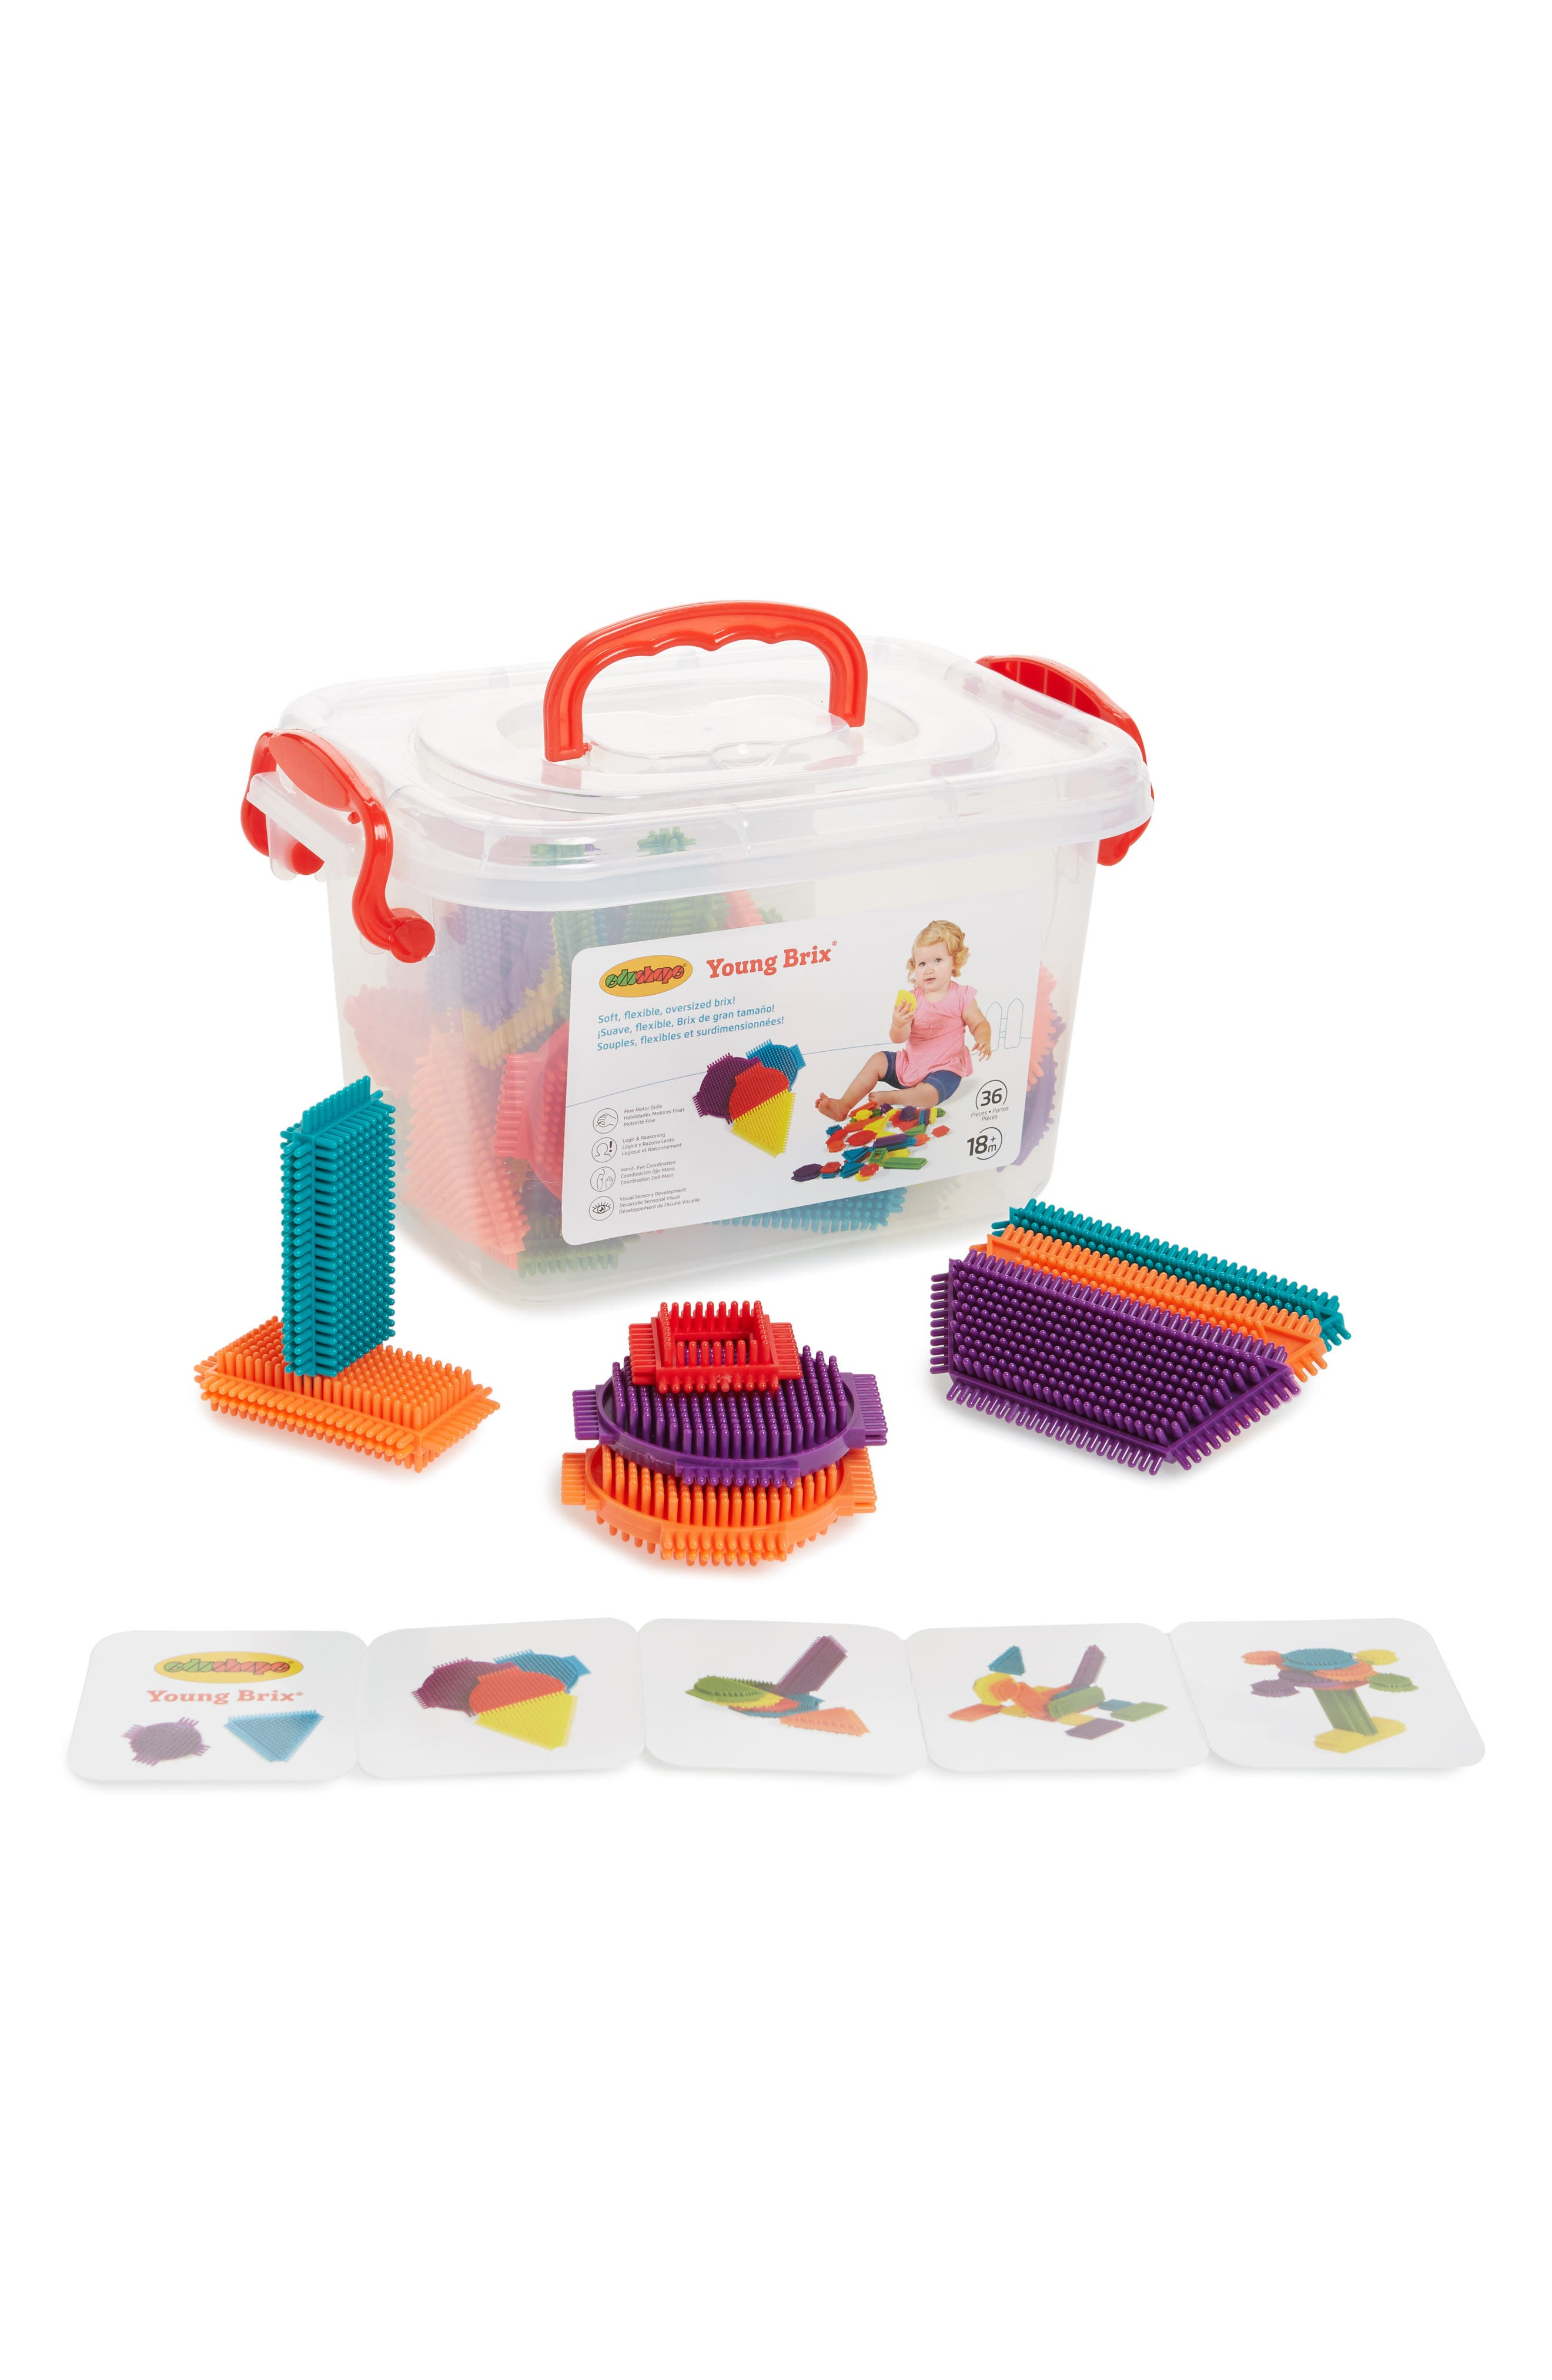 Alternate Image 1 Selected - edushape Young Brix 36-Piece Building Set